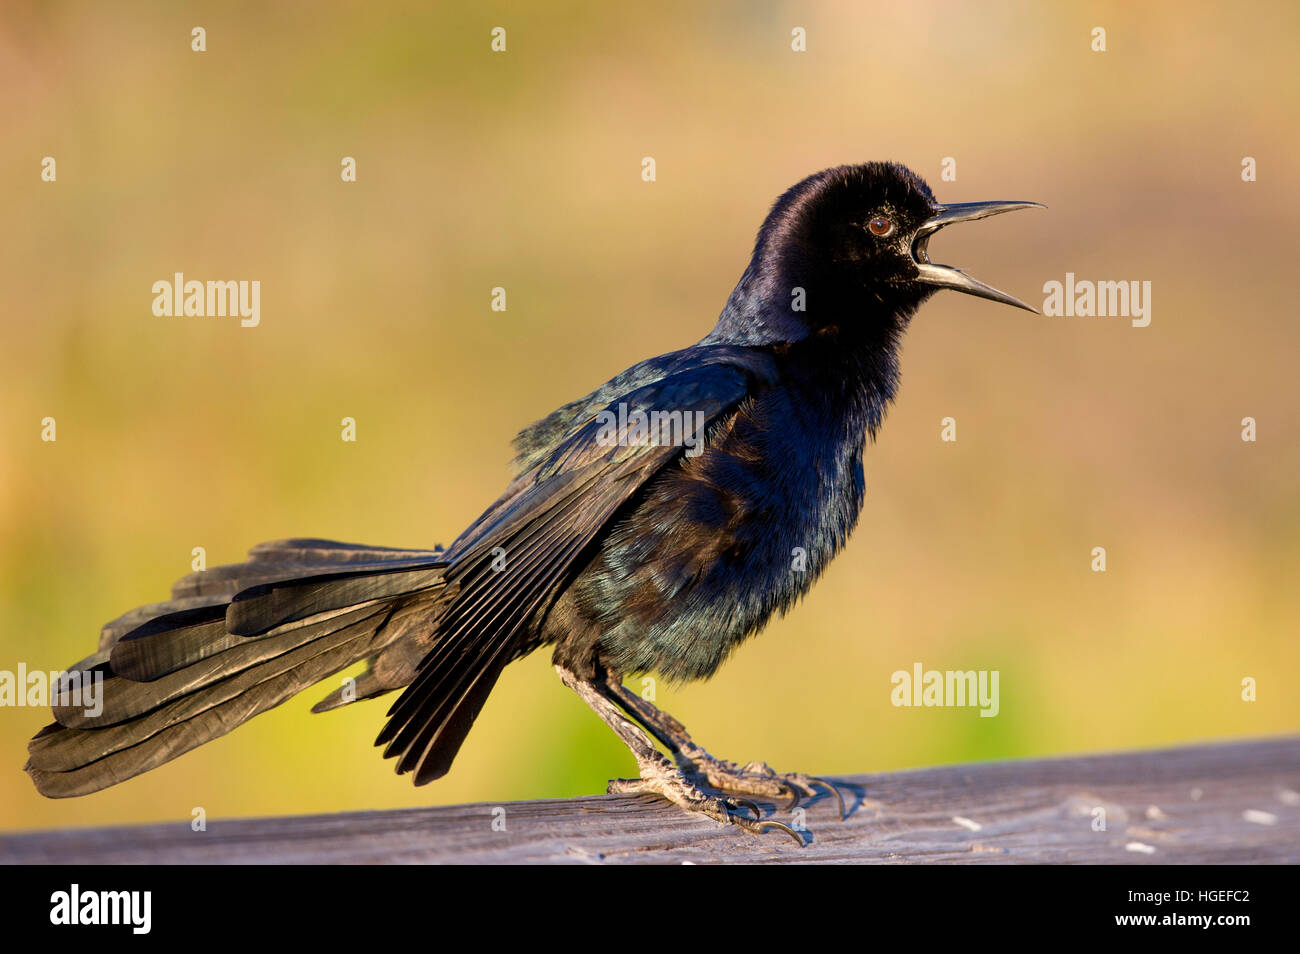 A Boat-tailed Grackle sings loudly in the late afternoon sun while perched on a wooden railing. - Stock Image